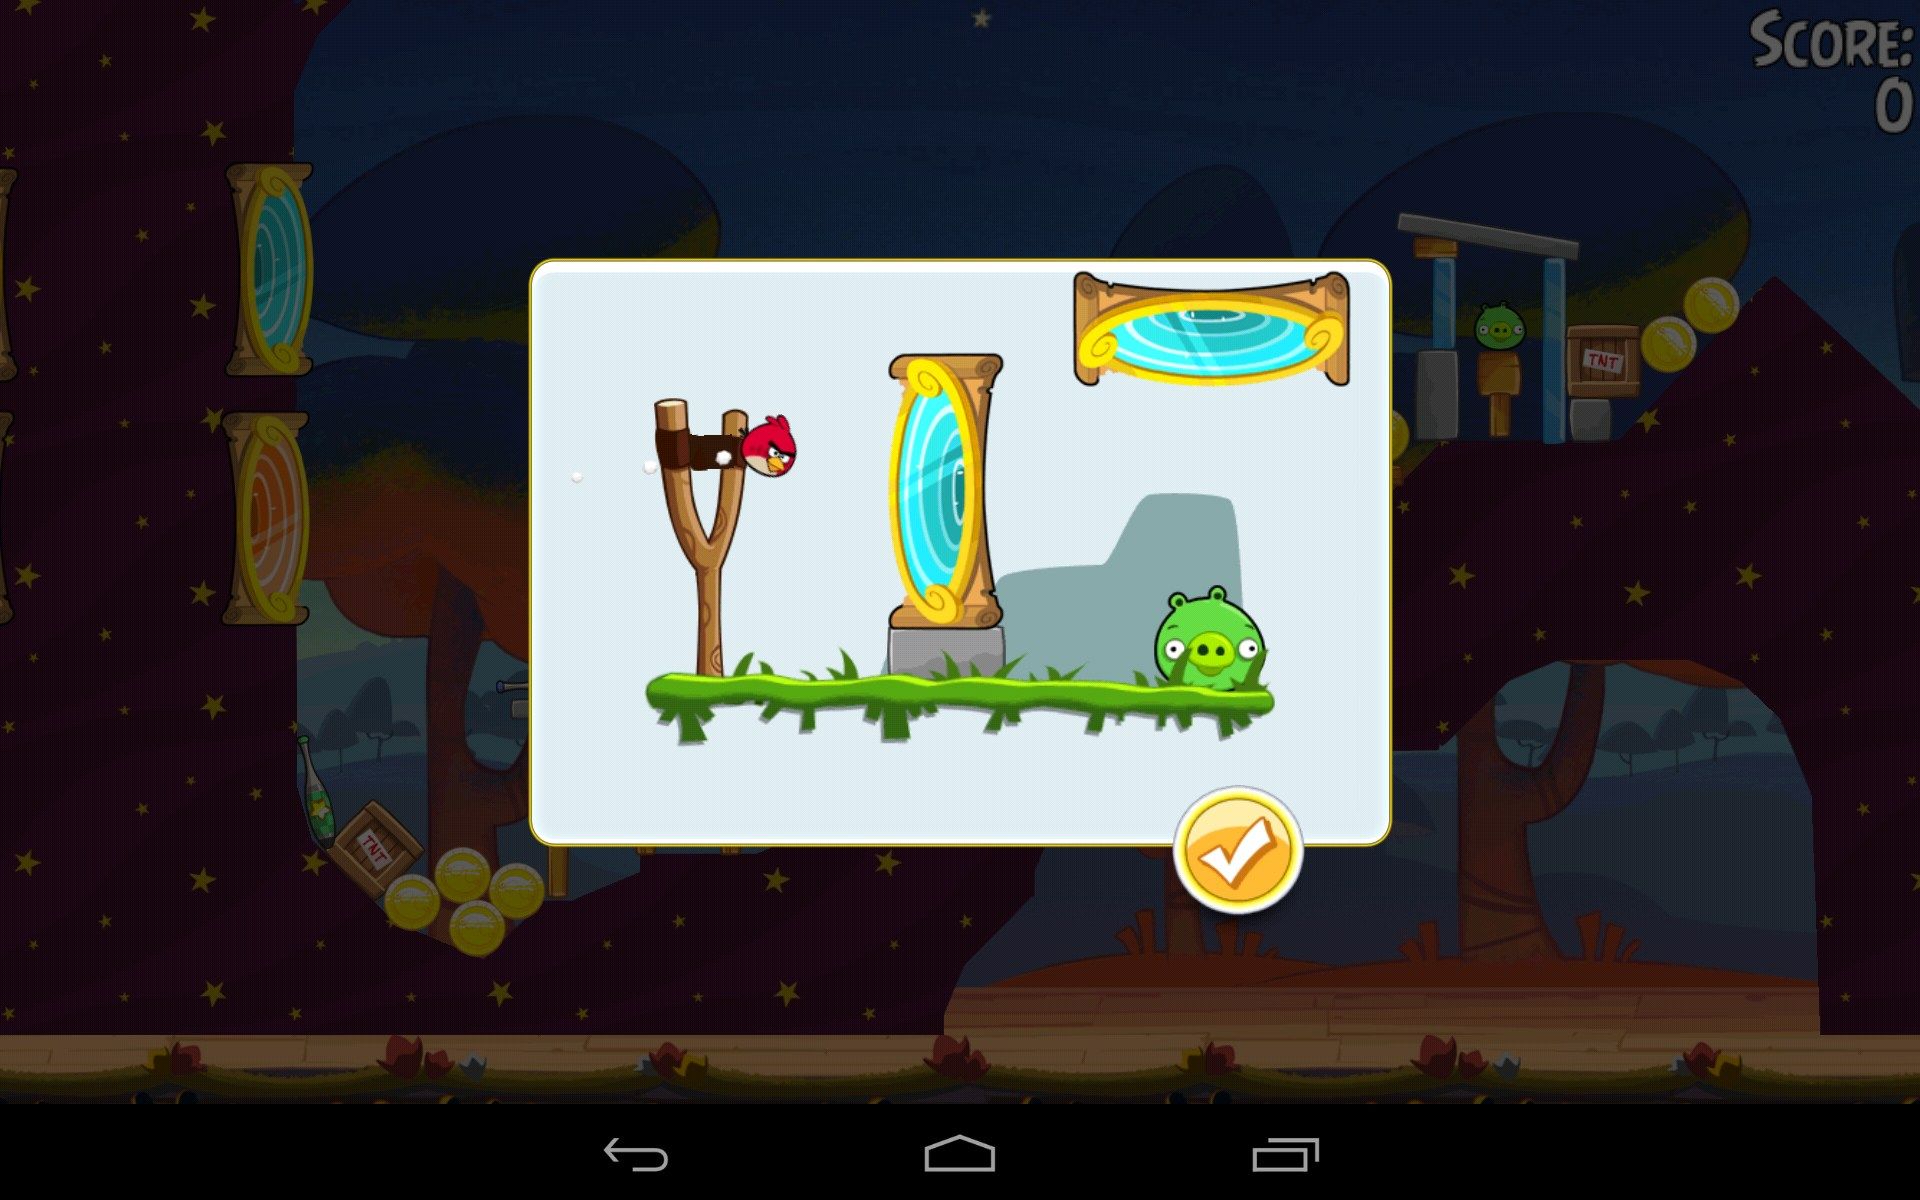 Angry birds games for kindle fire free